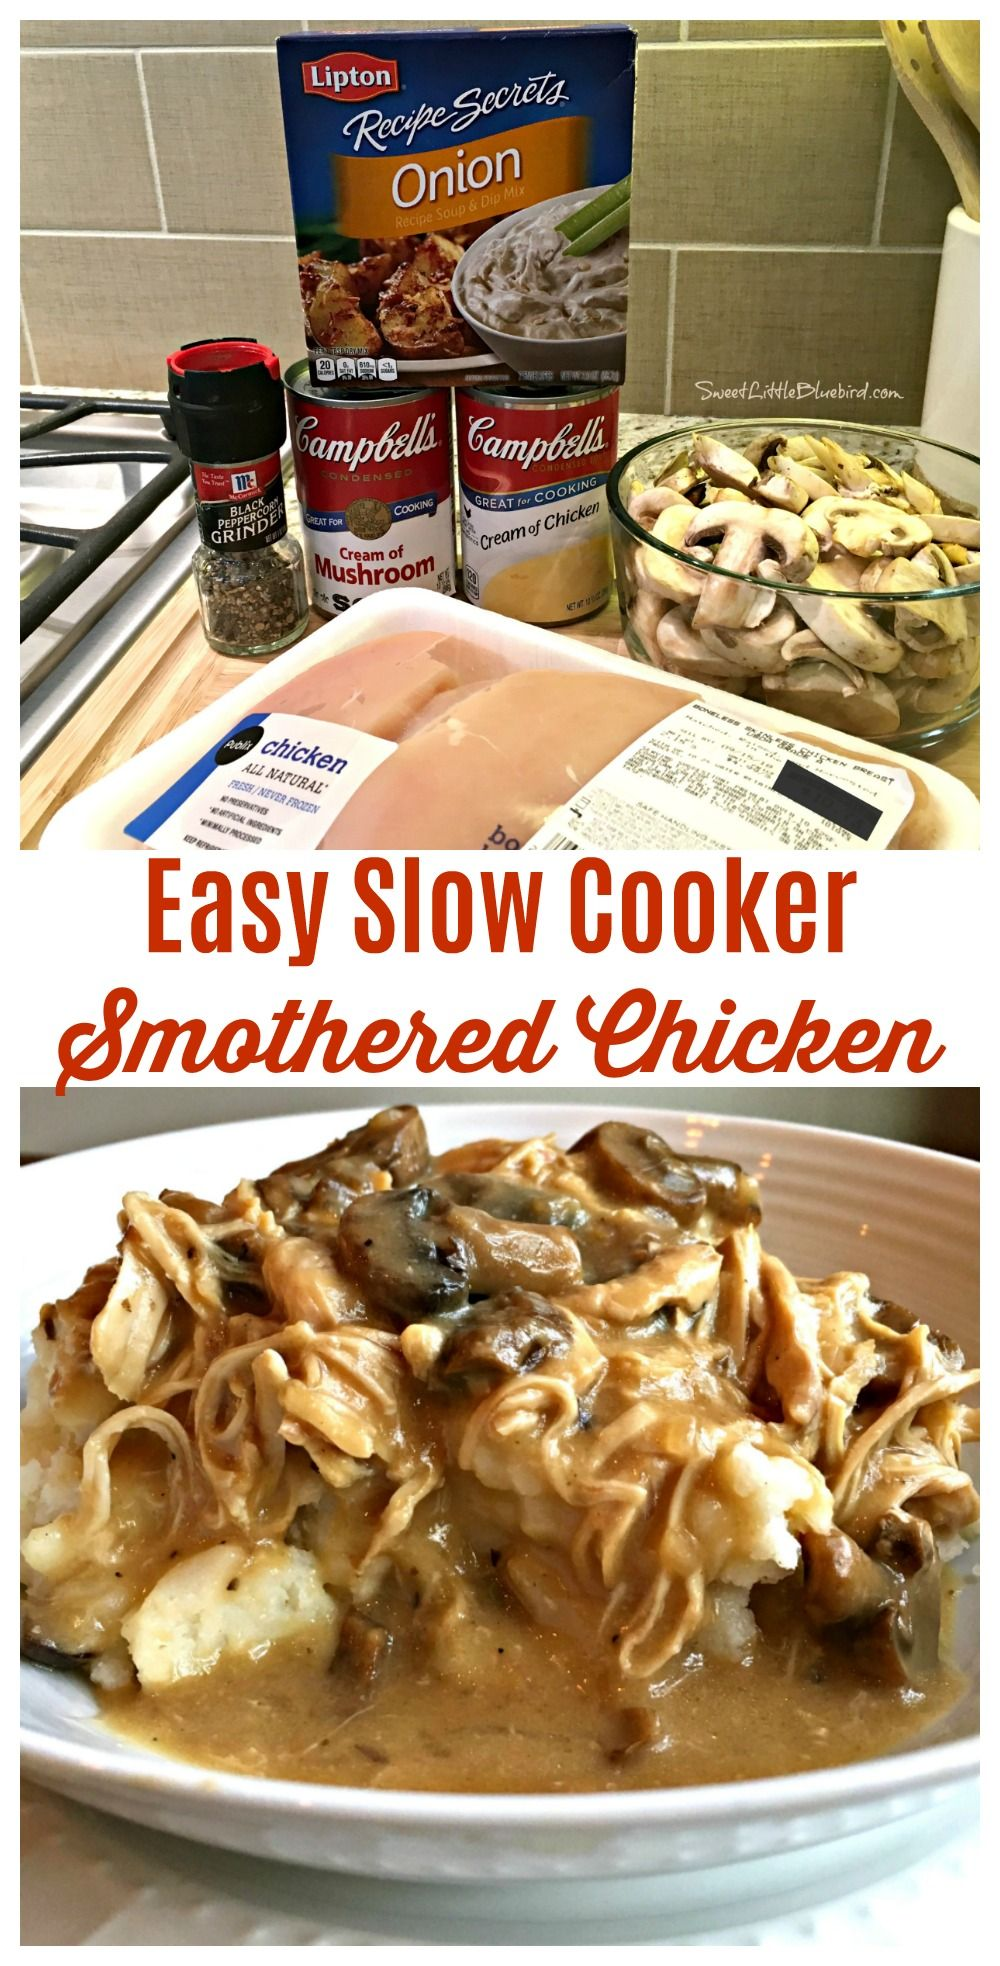 Easy Slow Cooker Smothered Chicken images